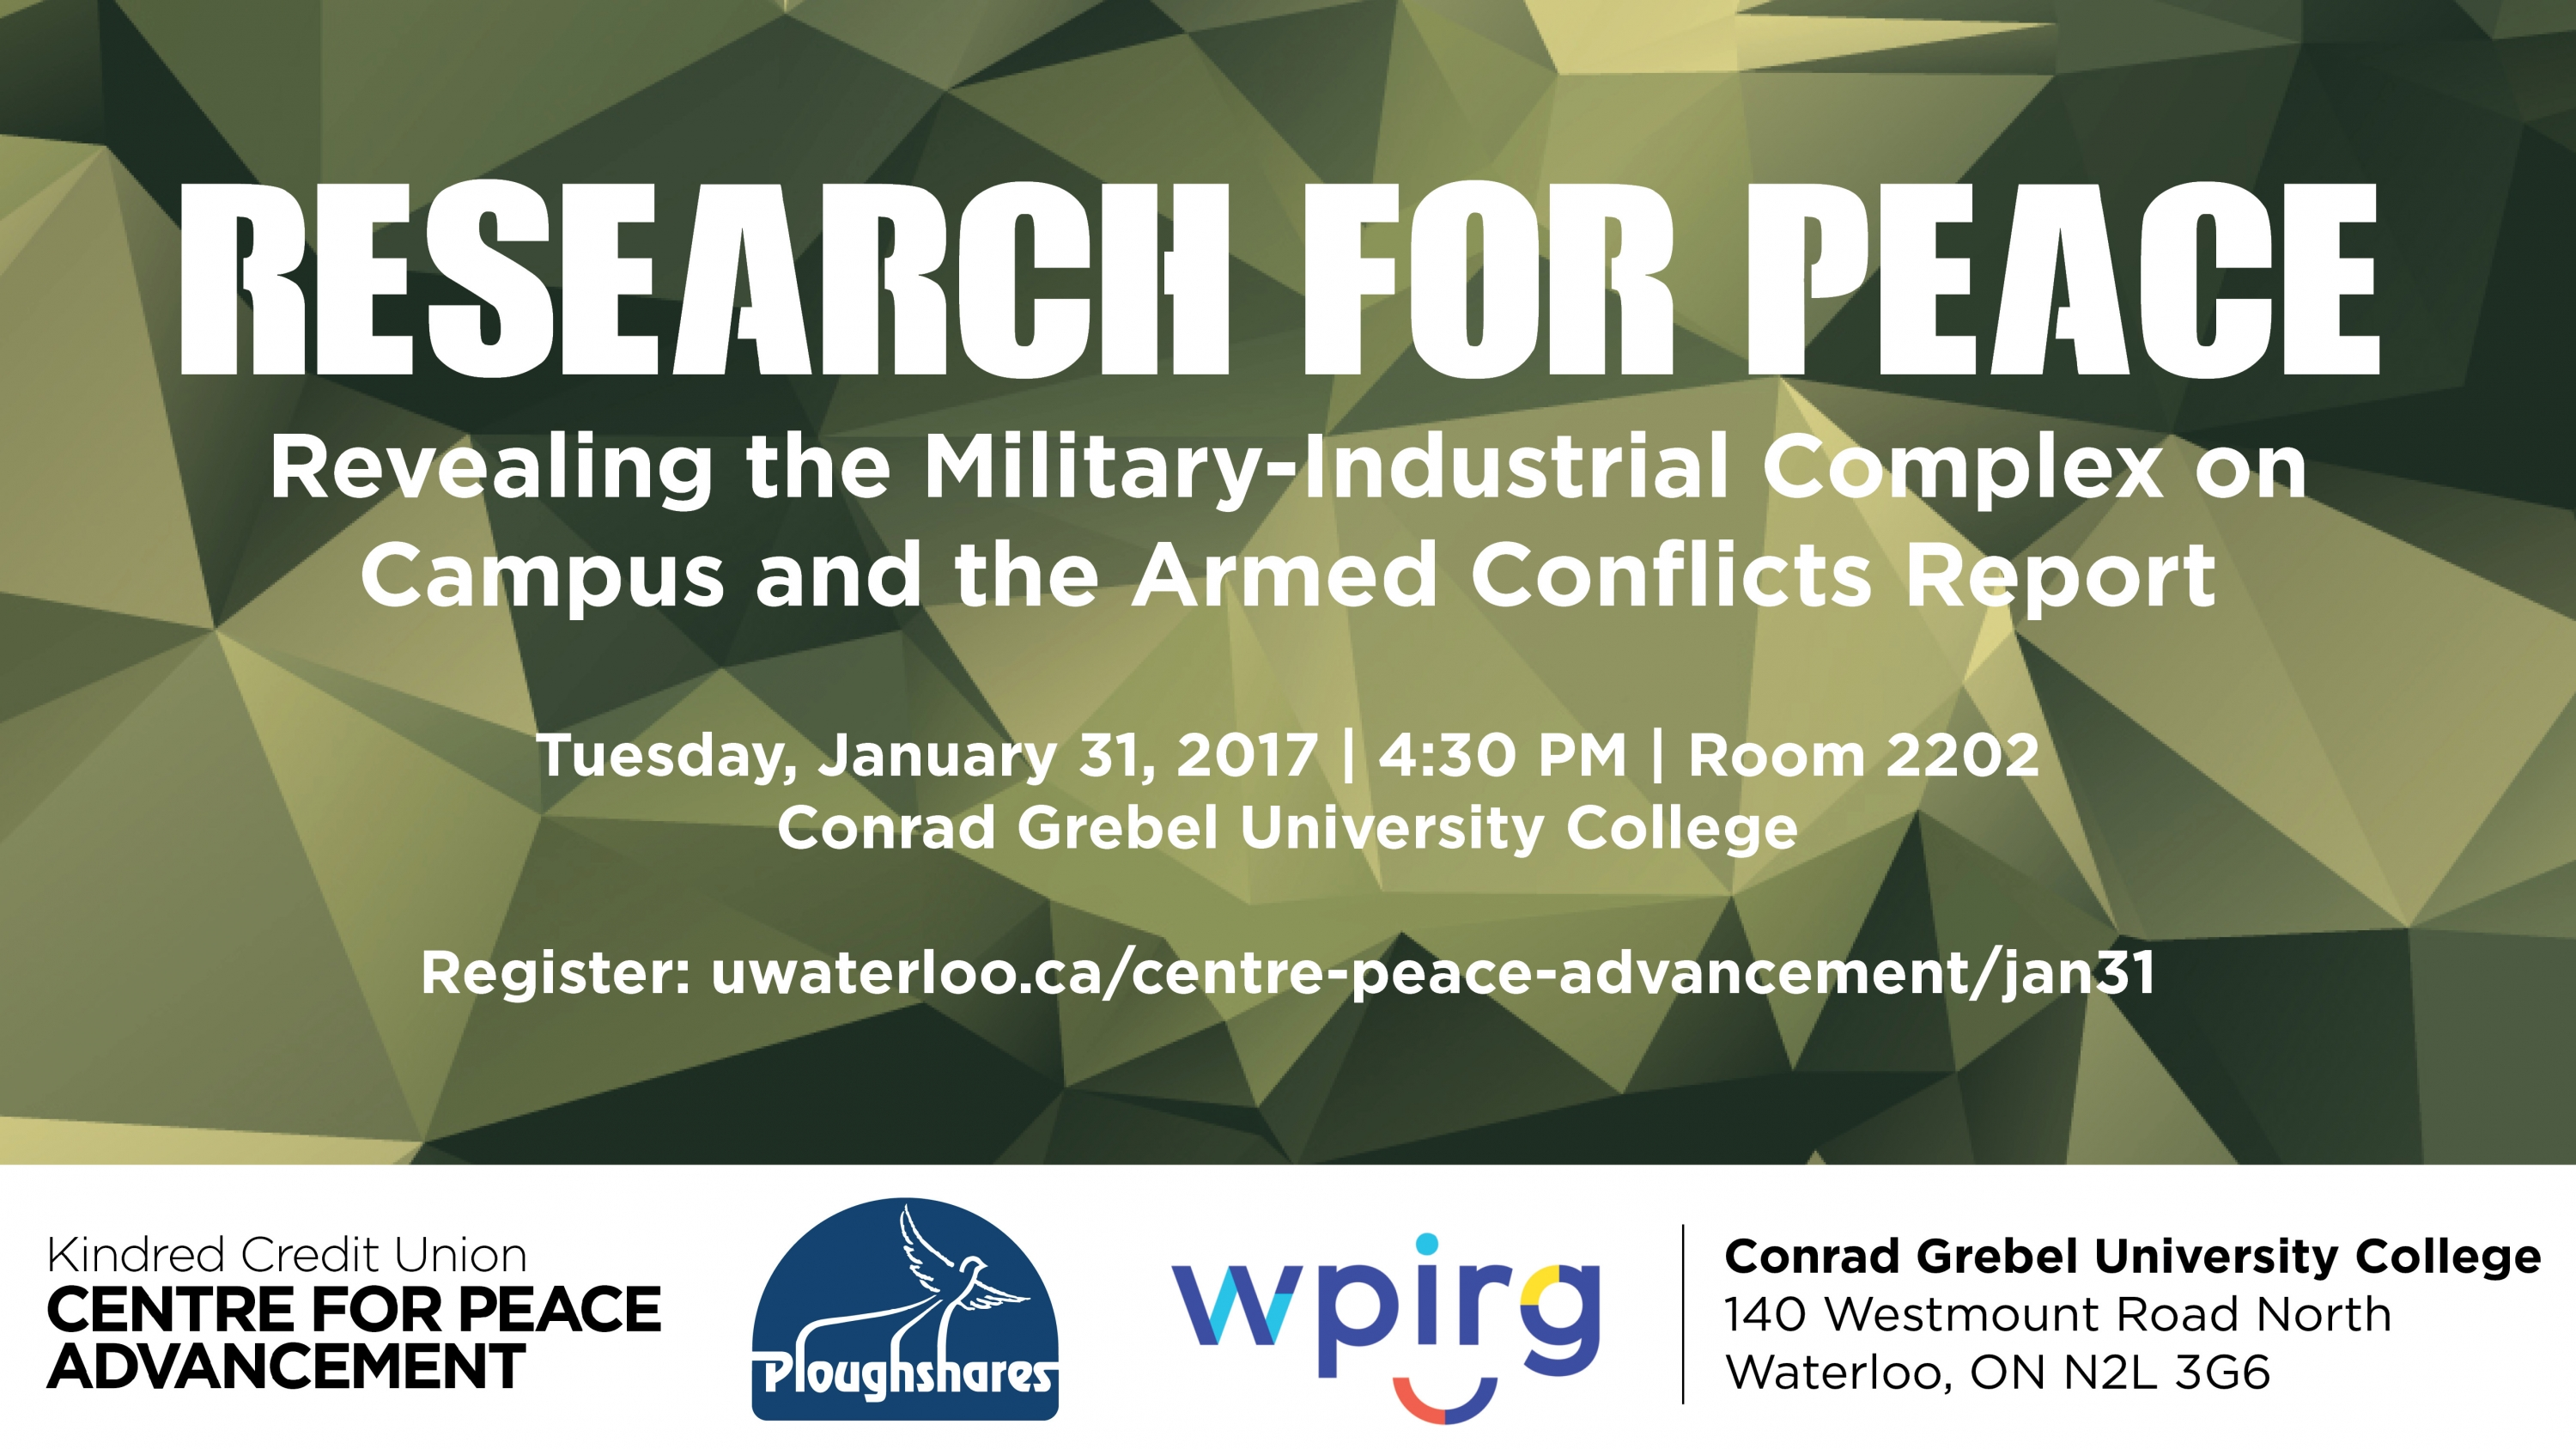 Research for Peace